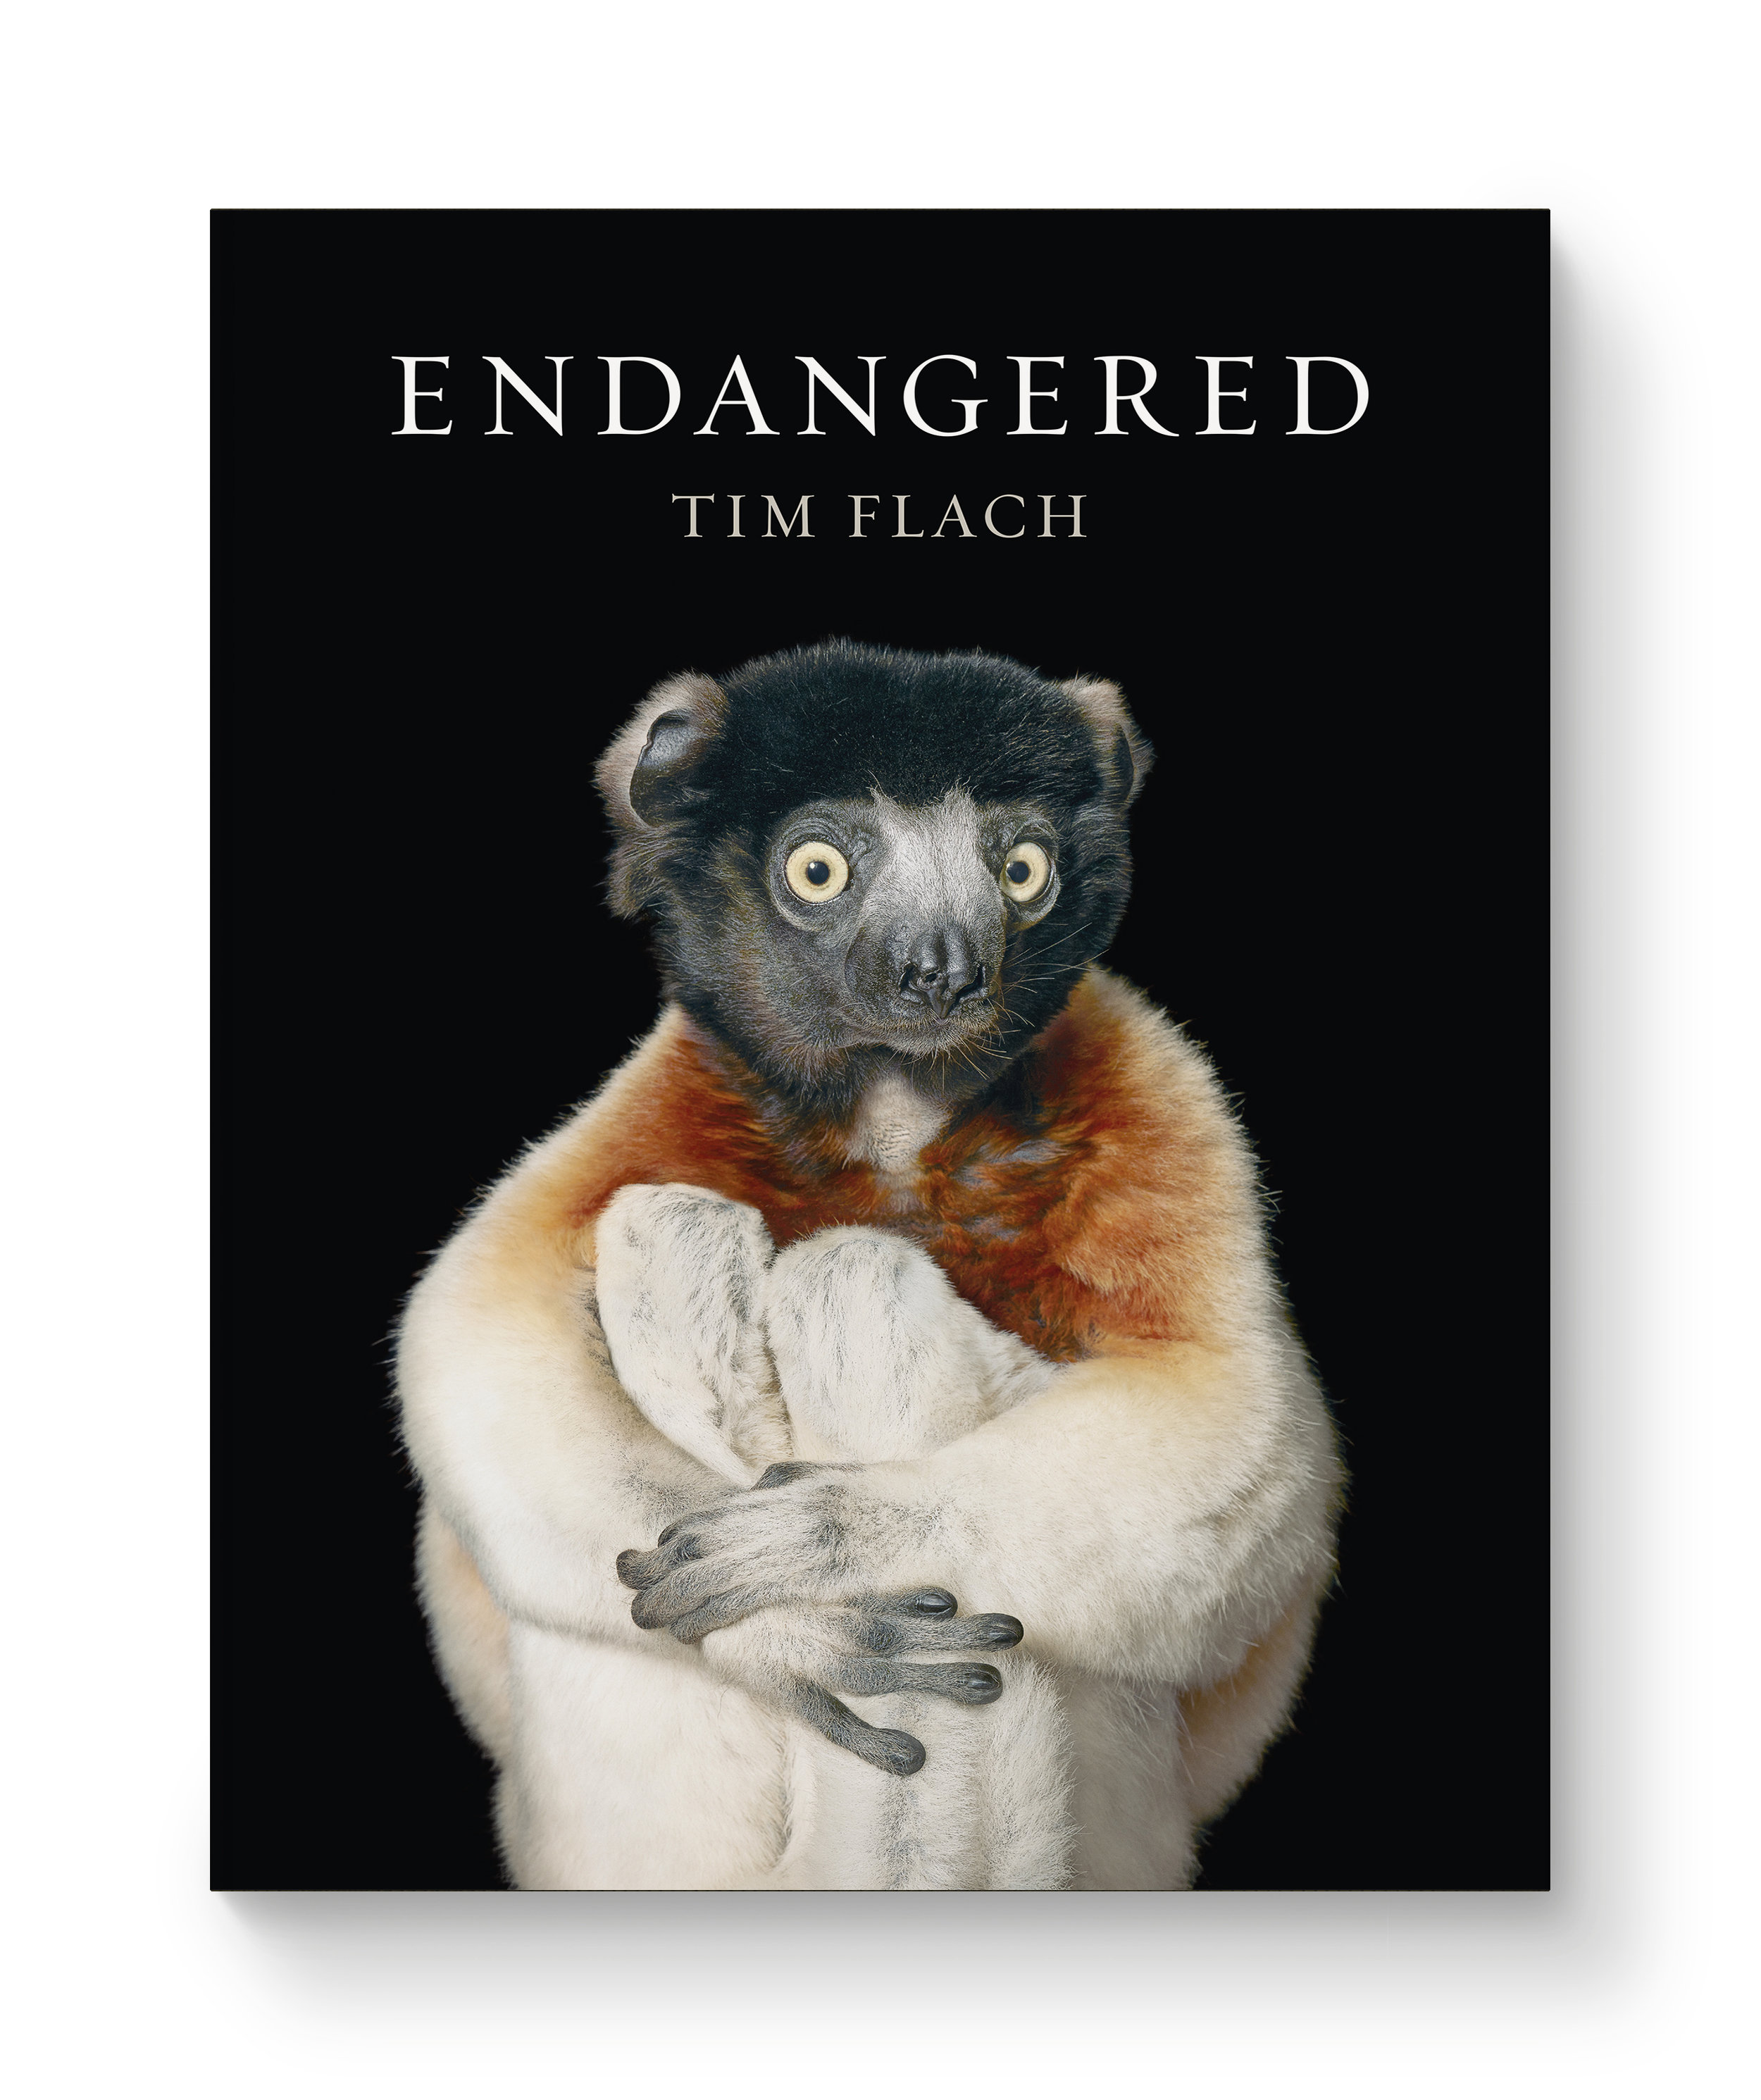 tf-endangered-jkt.jpg